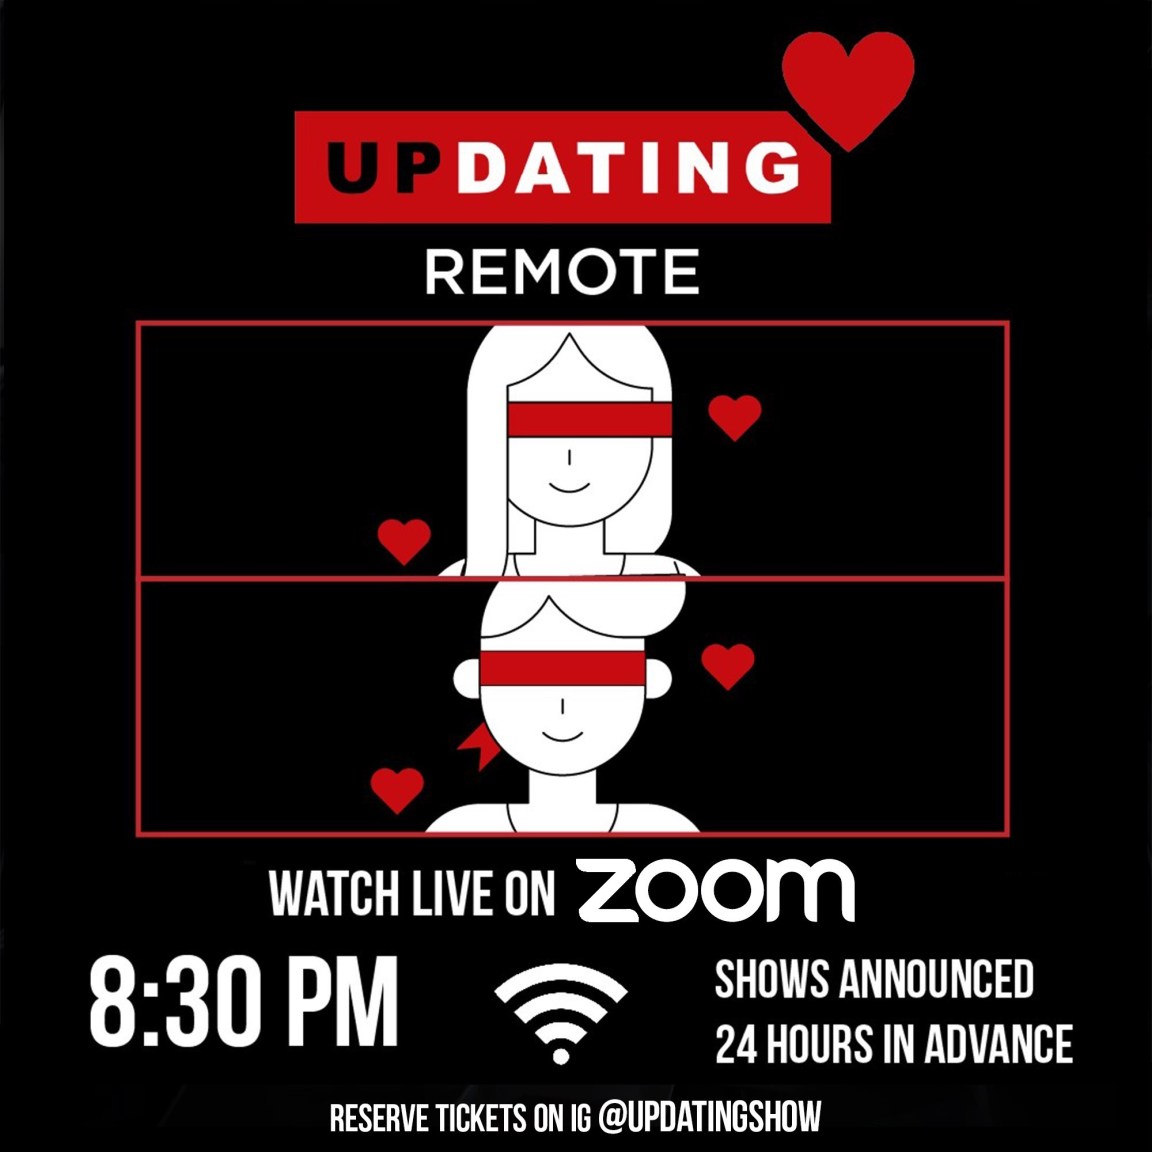 After Drawing Crowds, a Live Dating Show Is Forced to Get a Room